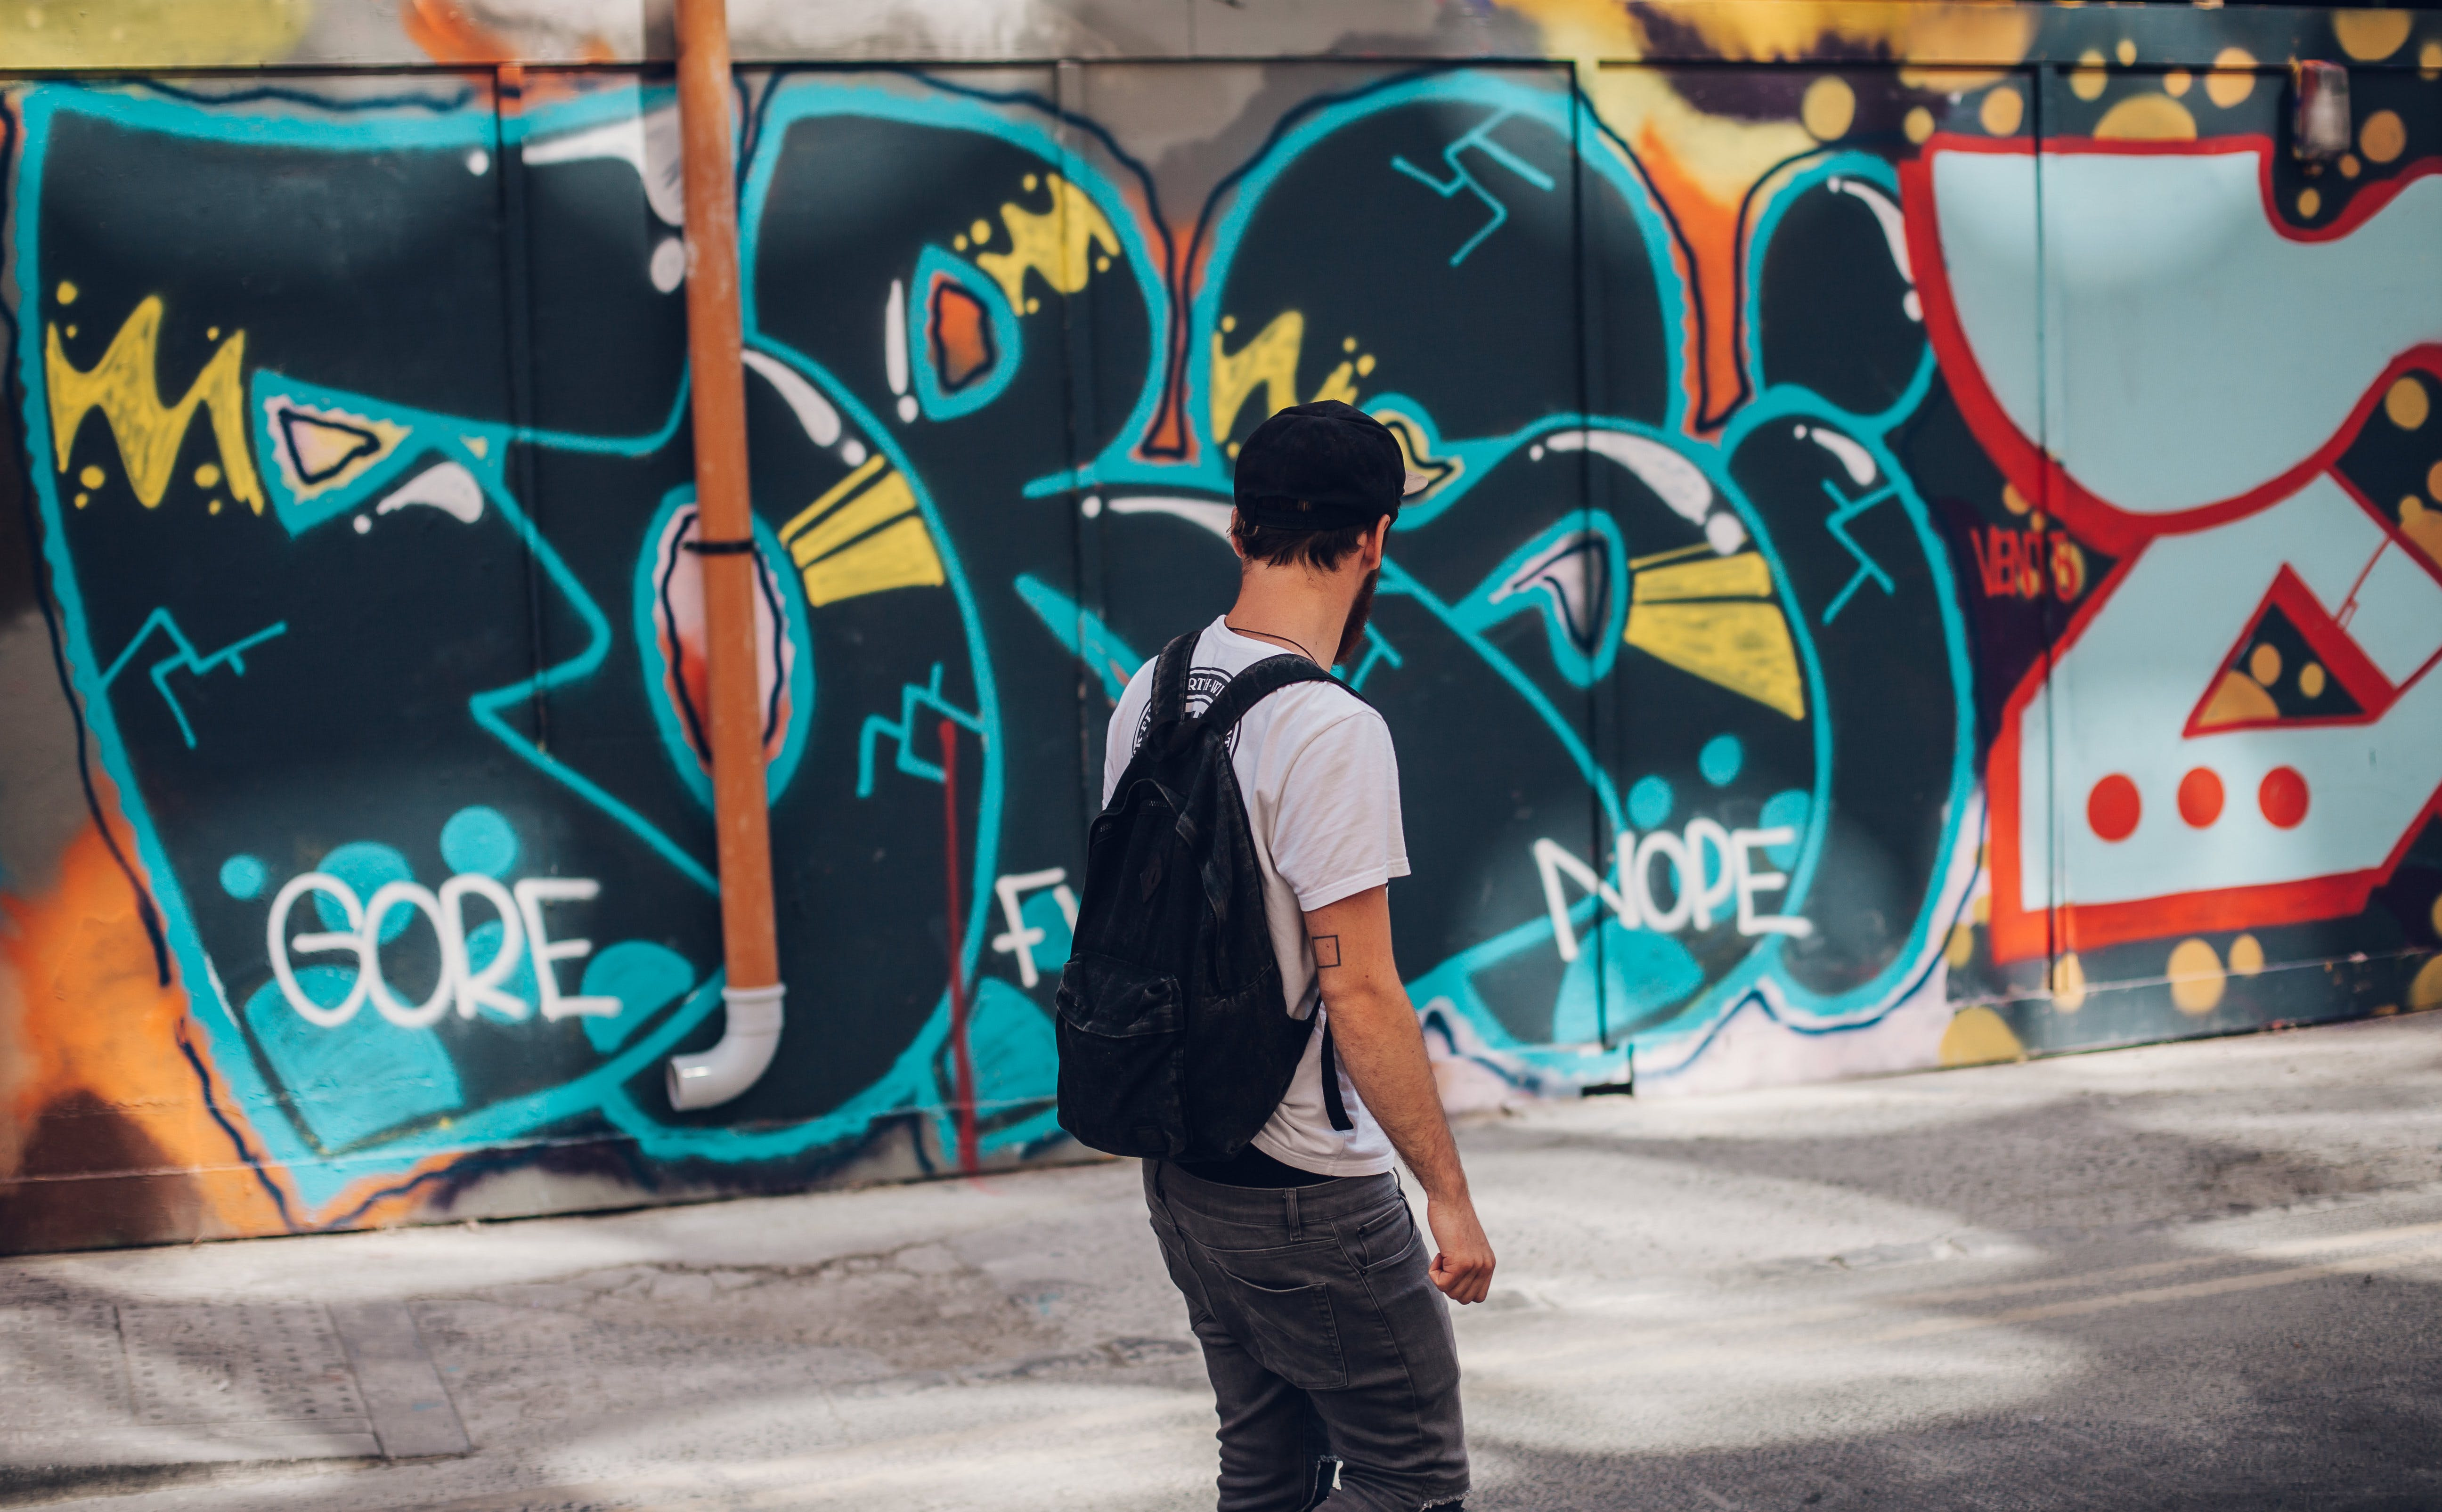 Man Wearing Backpack Near Graffiti Wall